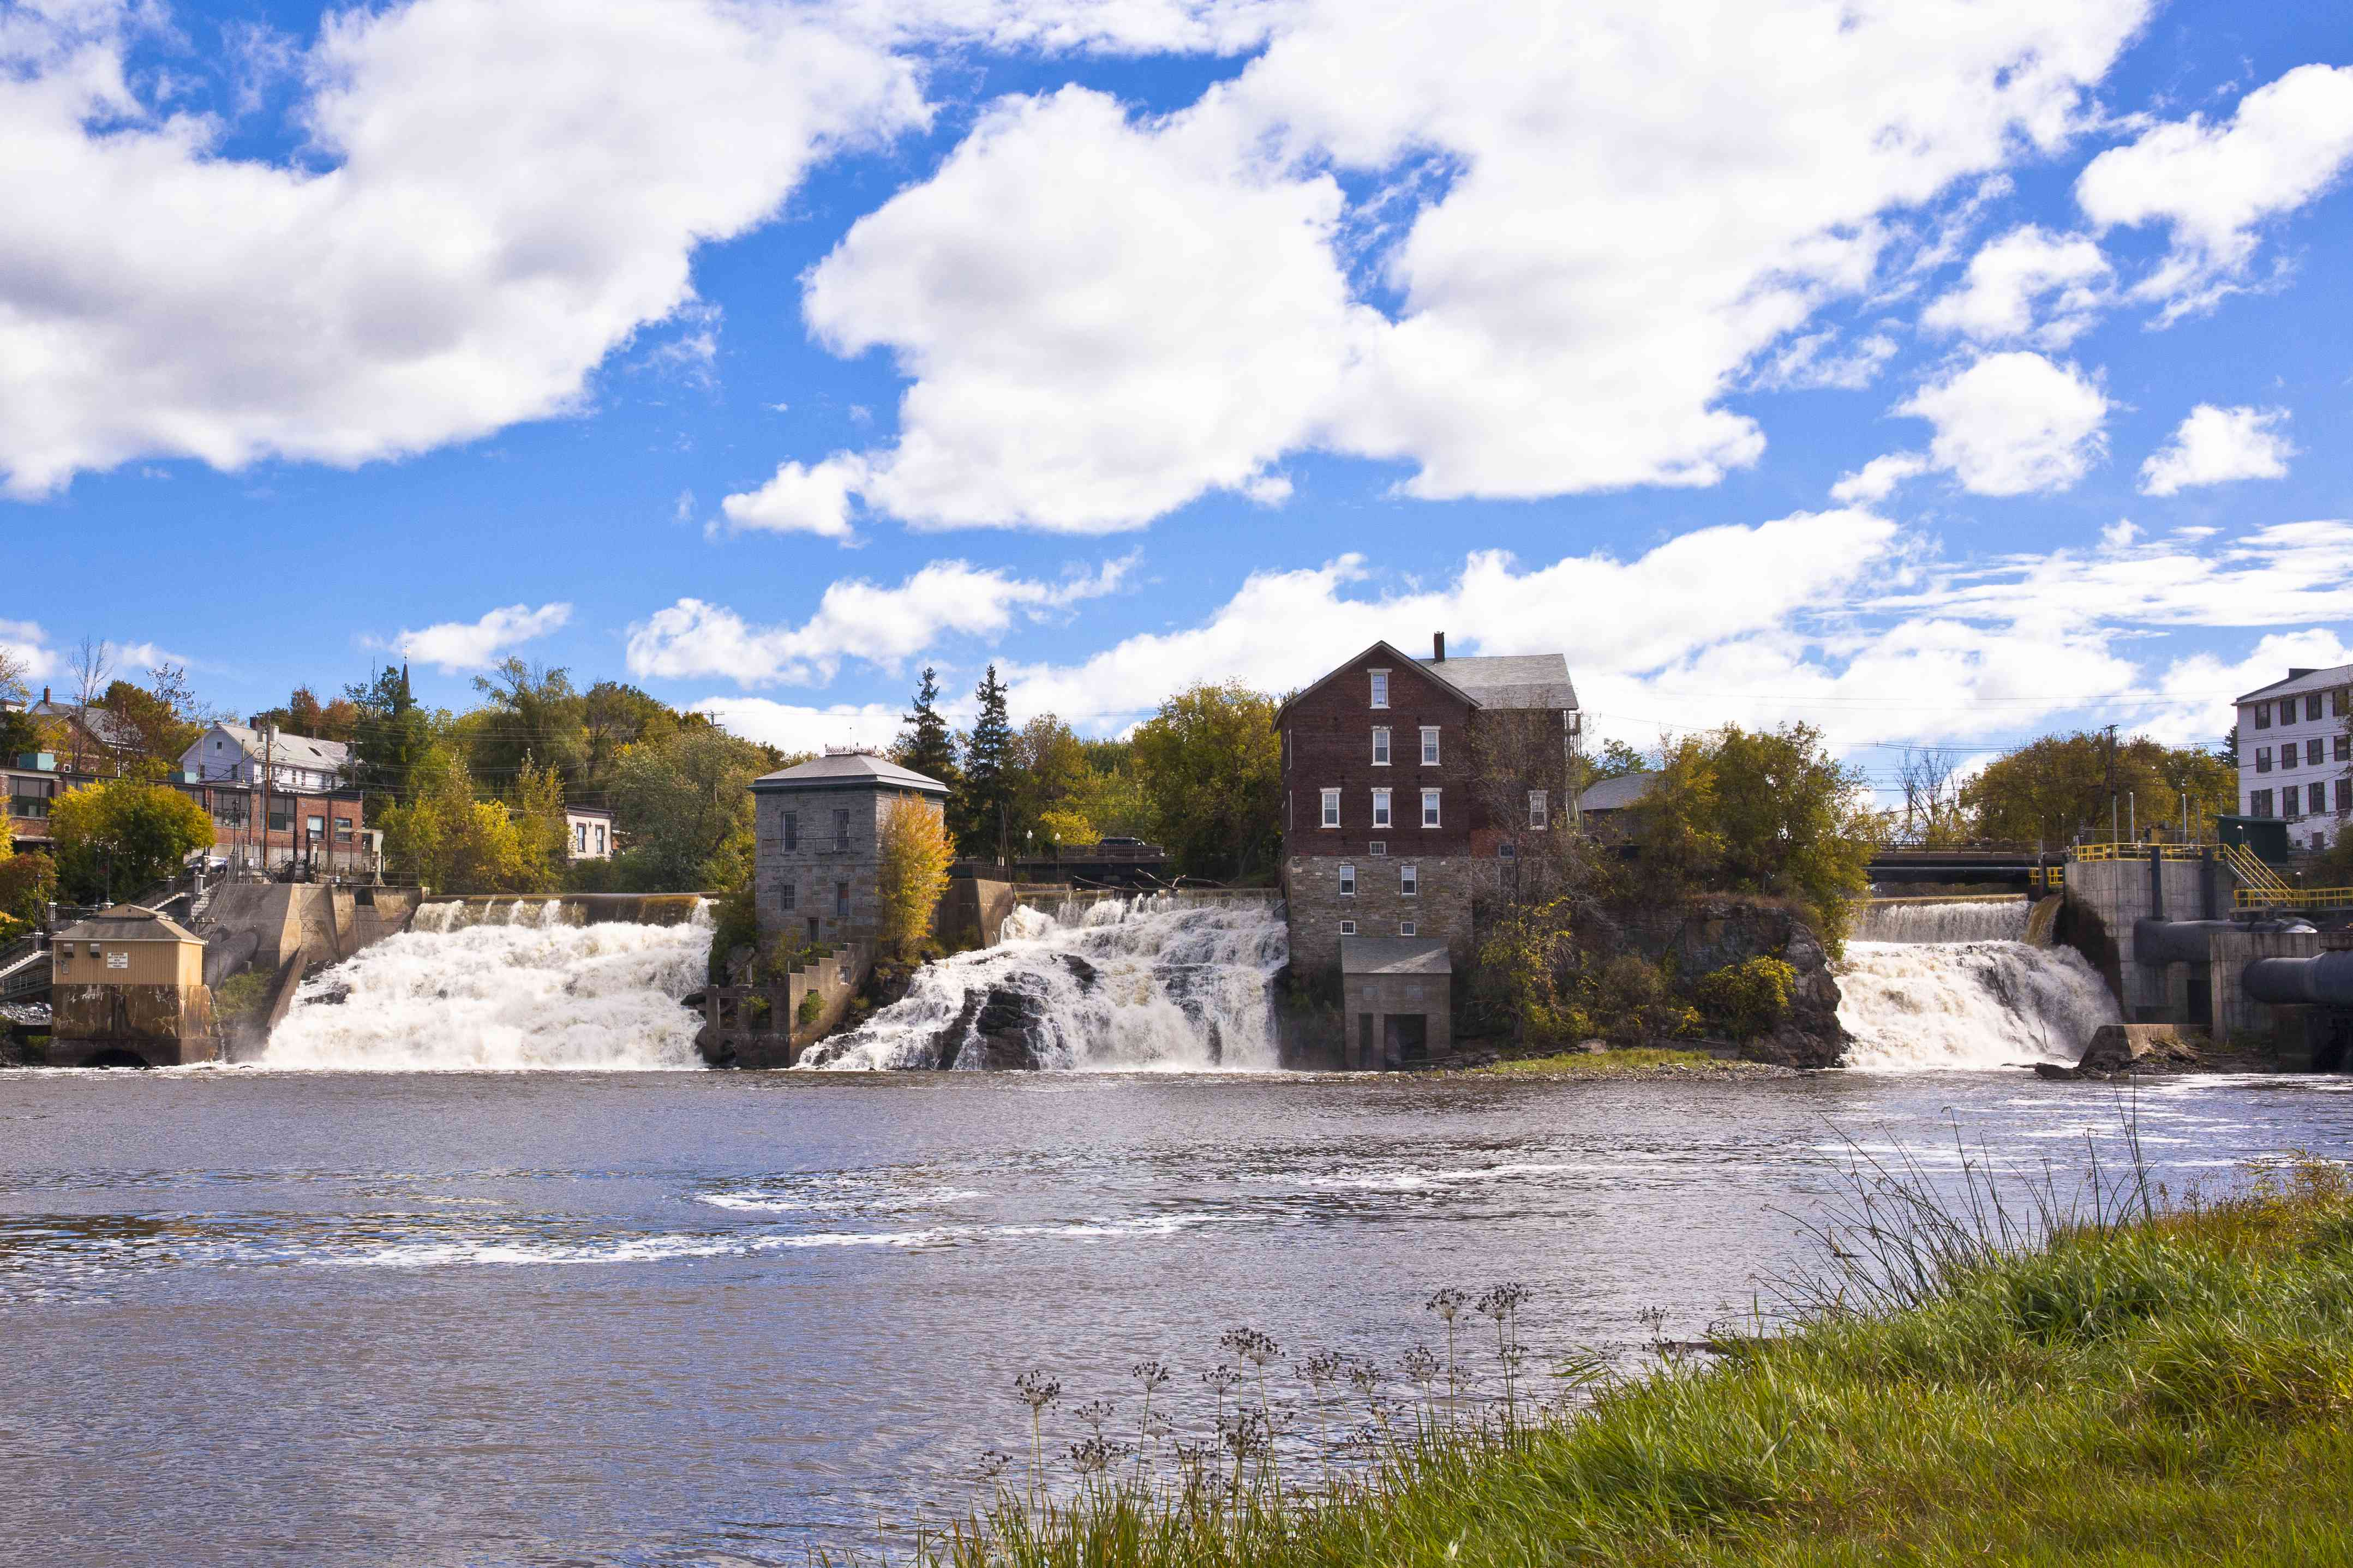 The falls on Otter Creek in Vergennes, Vermont